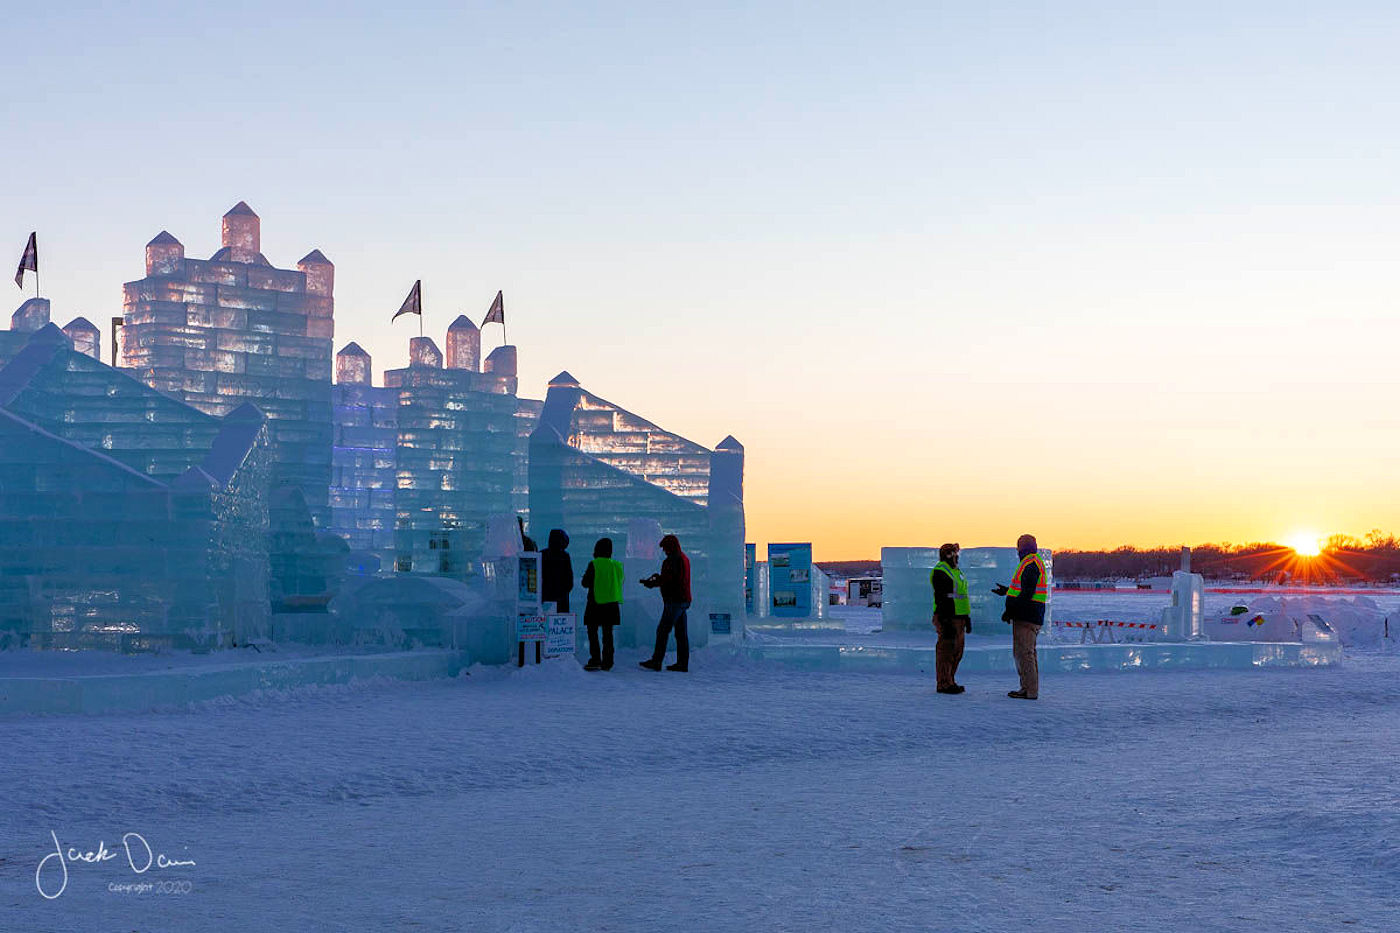 Detroit Lakes Polar Fest Ice Palace photo by Jack Davis Photography - Detroit Lakes, Minnesota